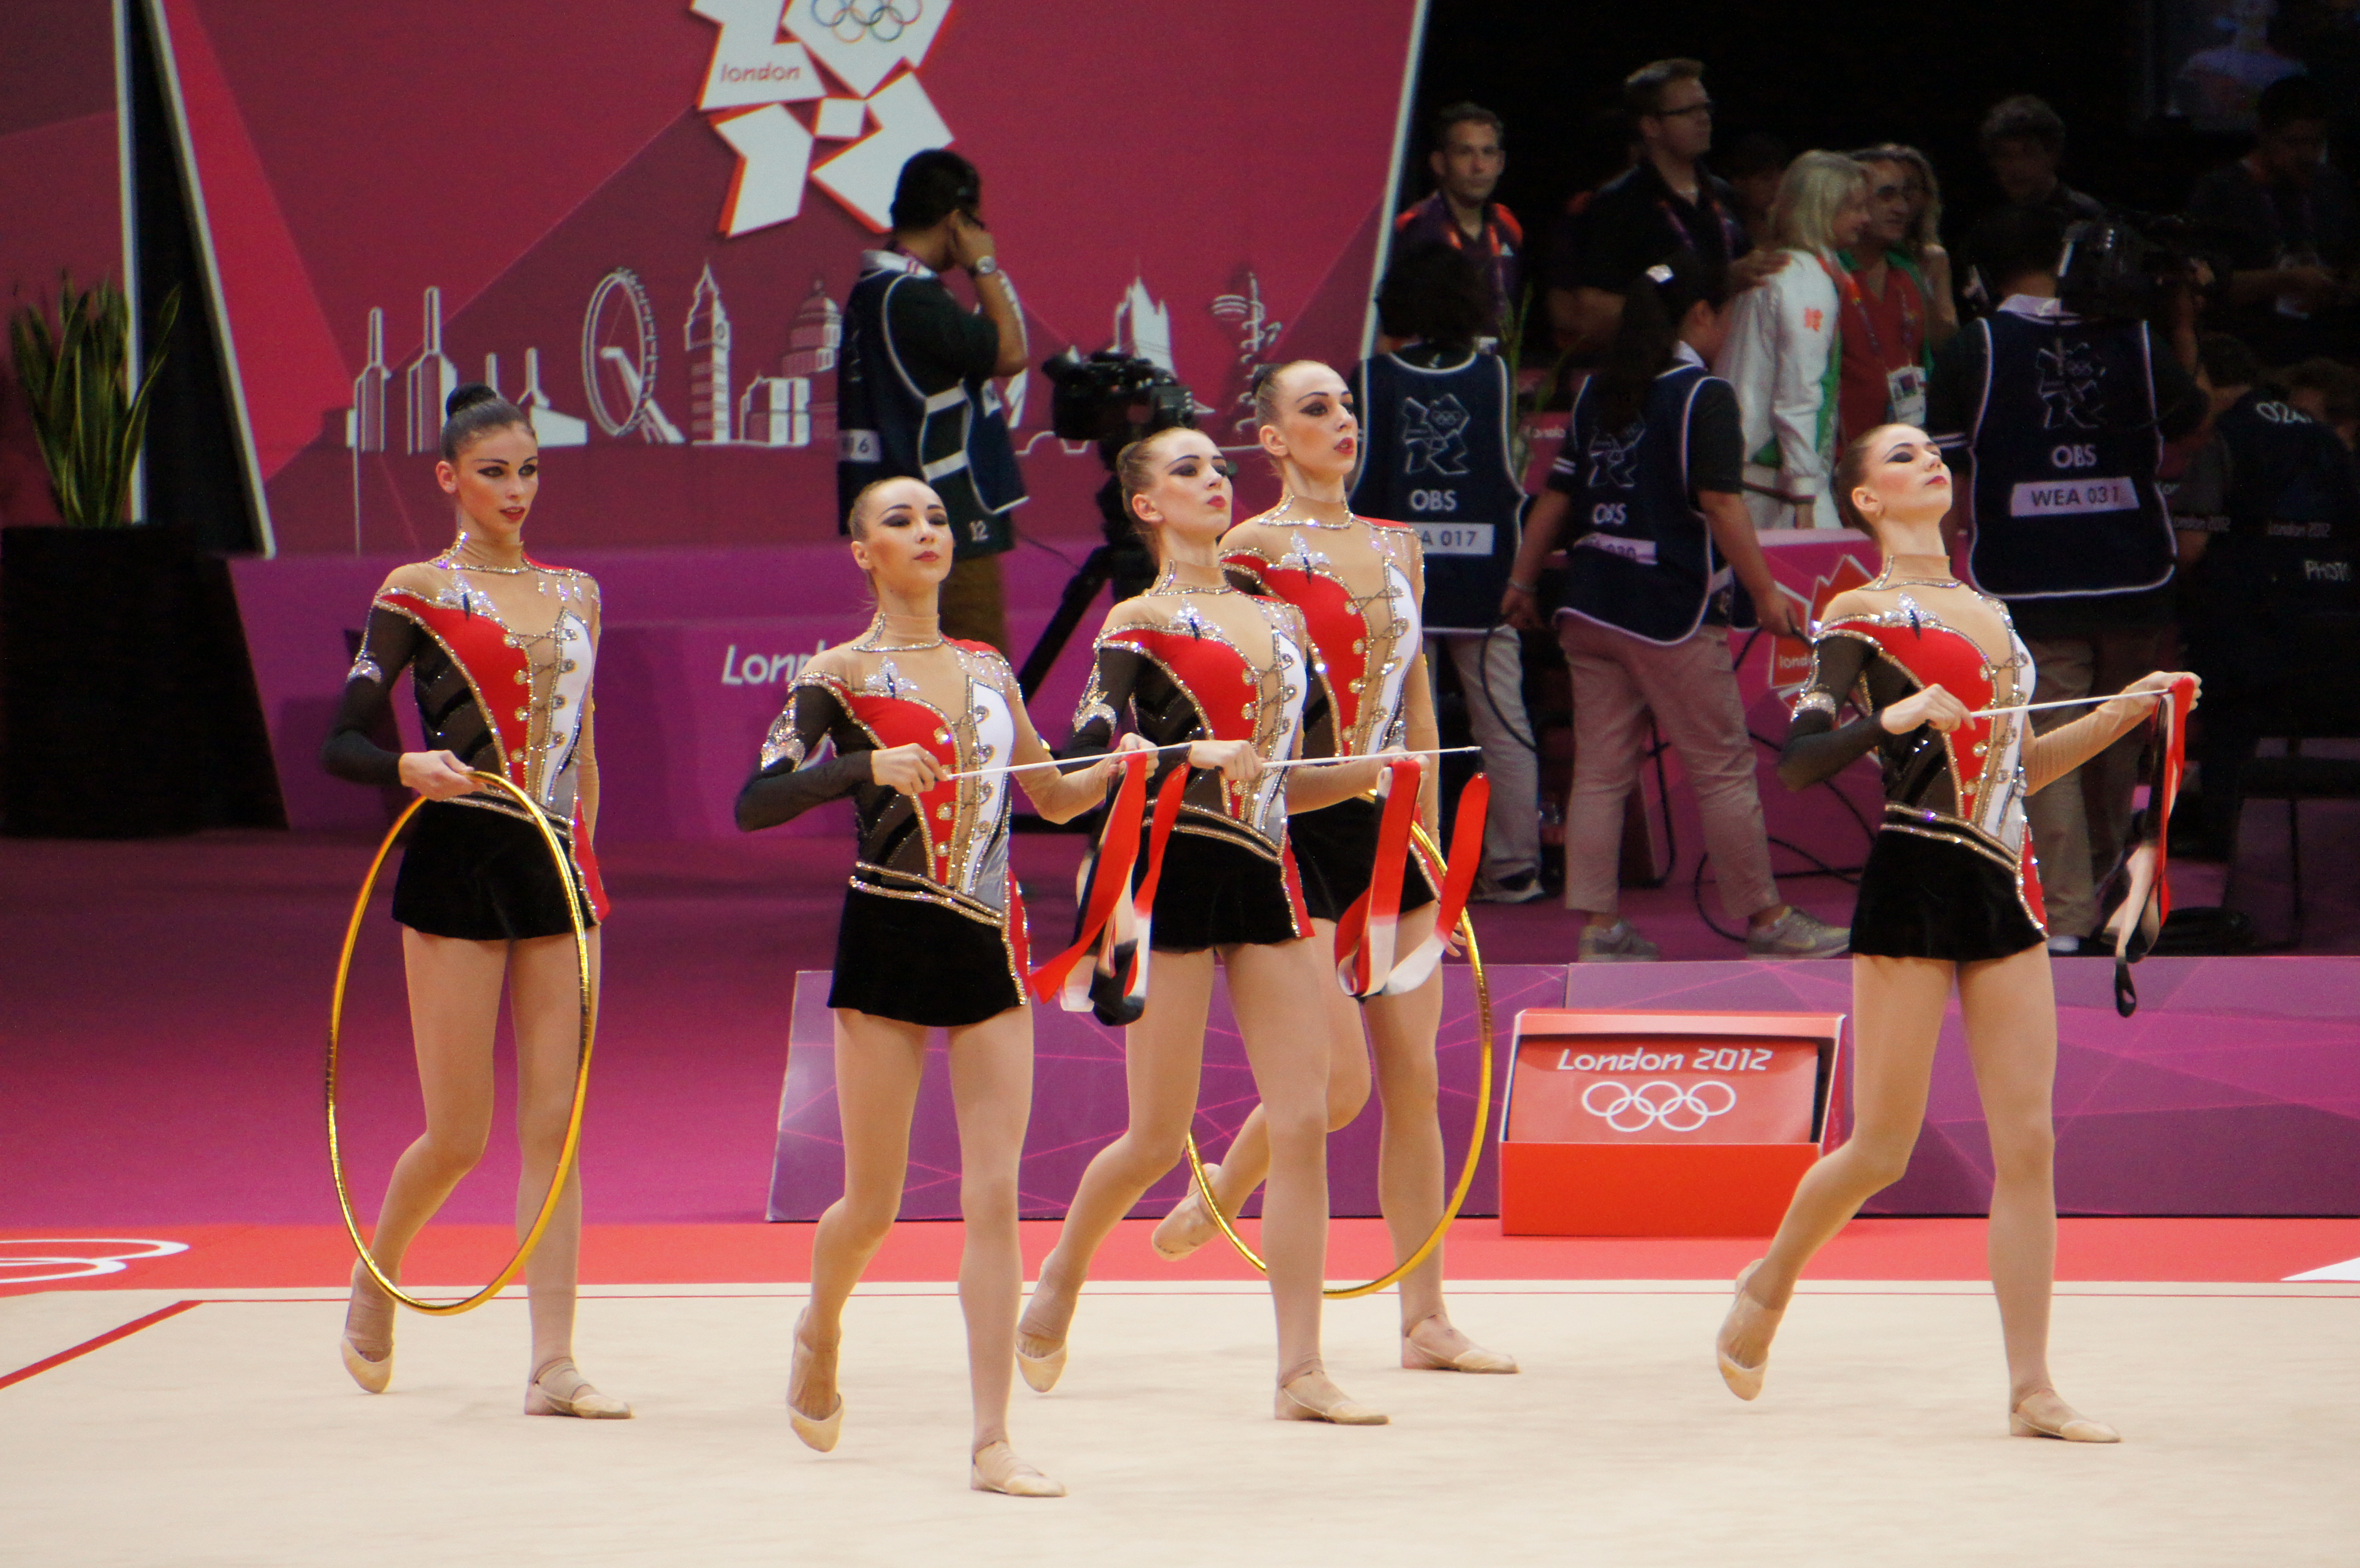 File:London 2012 Rhythmic Gymnastics - Ukraine.jpg - Wikimedia Commons